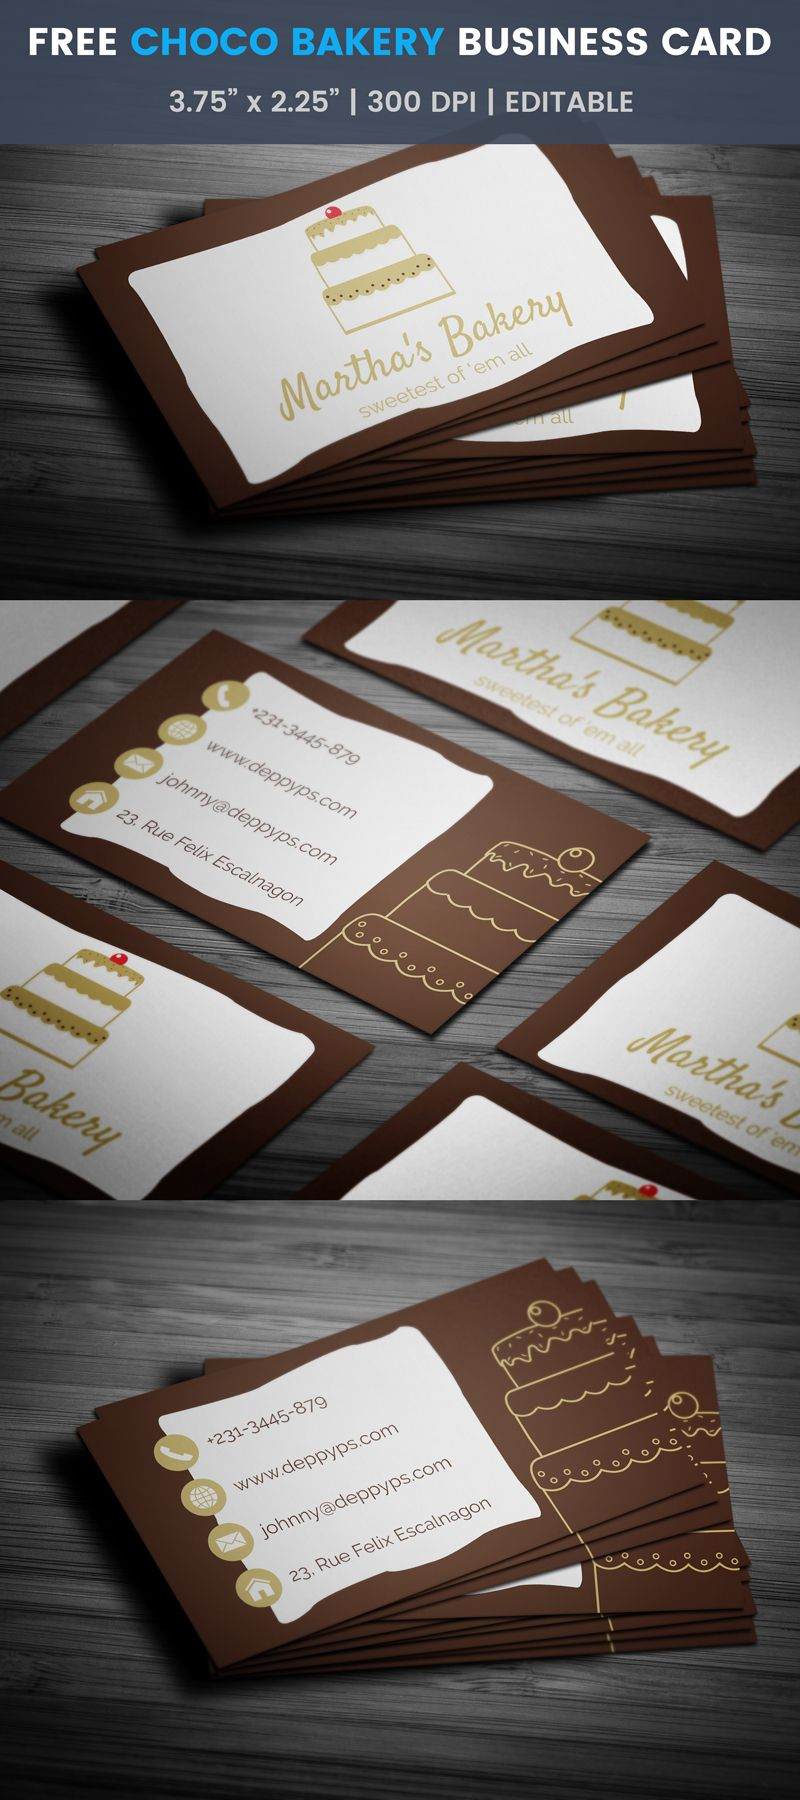 3 Layer Chocolate Cake Bakery Business Card Template Bake Free Business Card Templates Bakery Business Cards Cake Business Cards